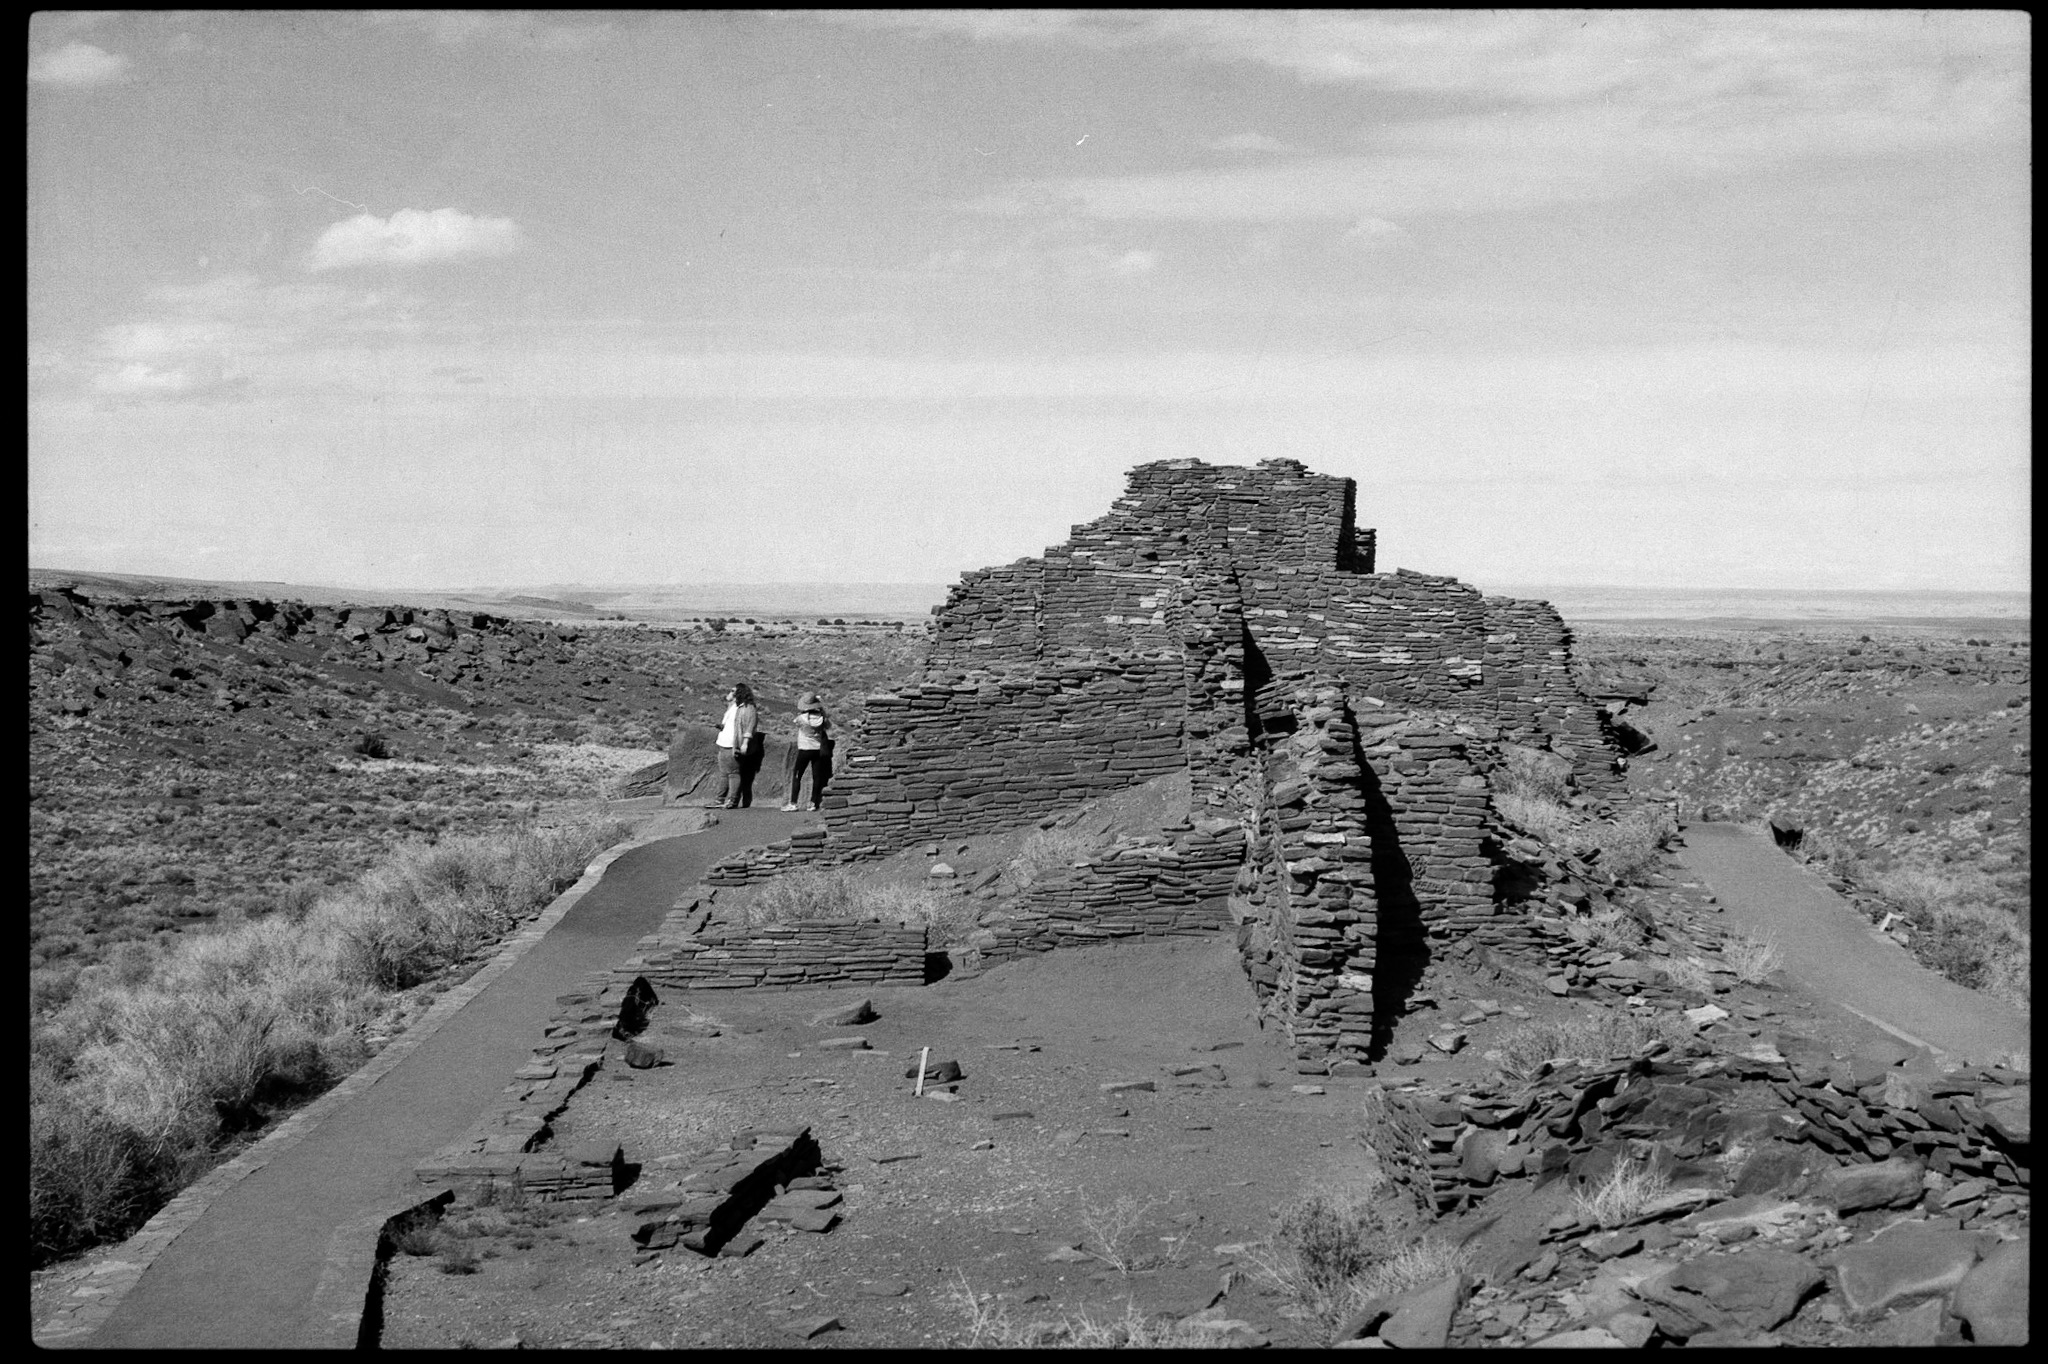 Deteriorated dwellings that used to be bedrooms at Wupatki National Monument